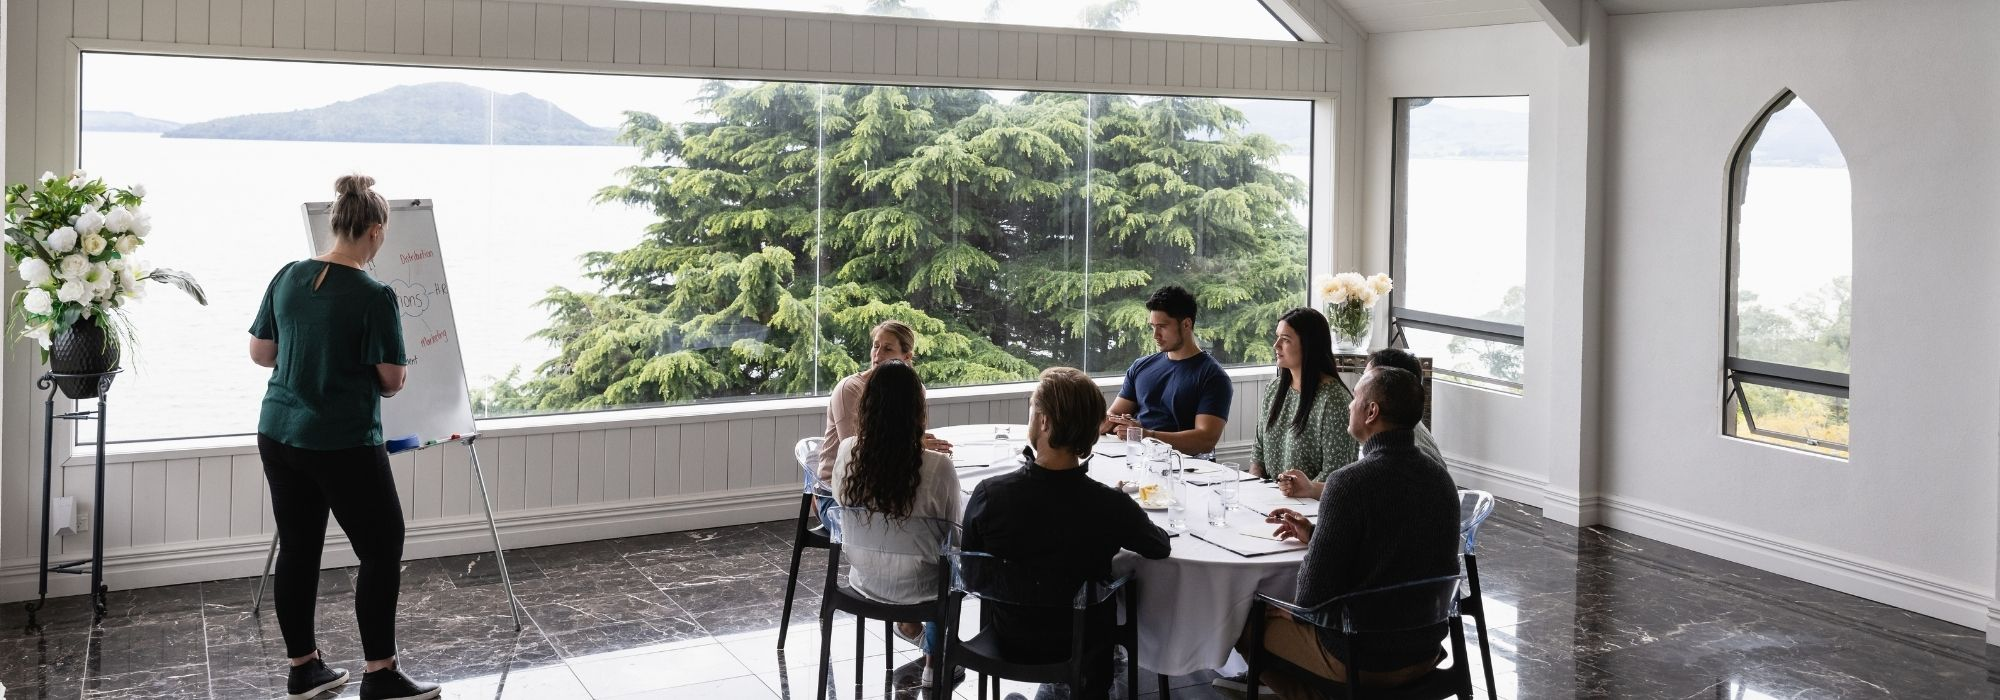 Small venues perfect for intimate gatherings